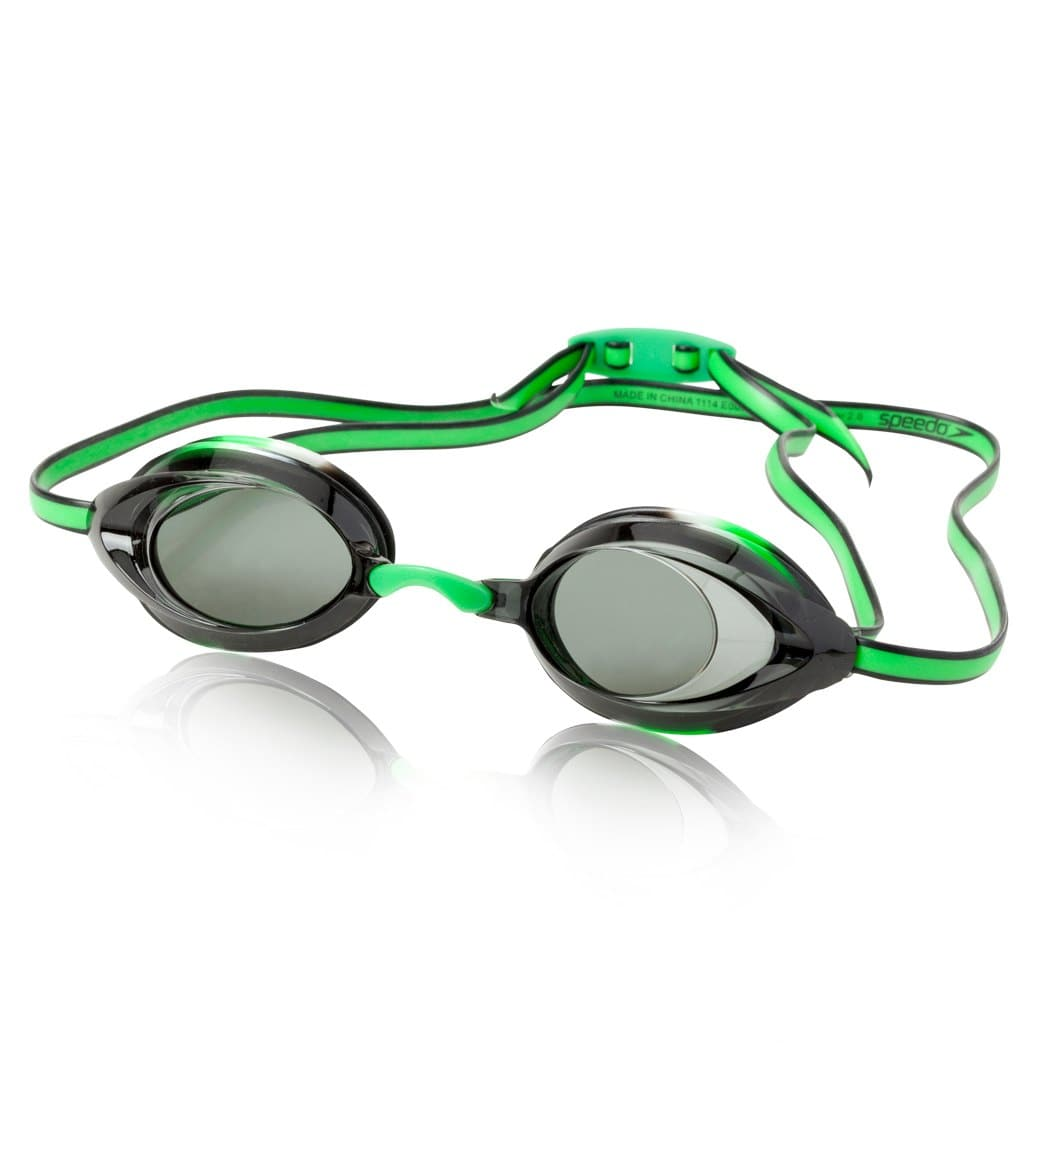 7adc0d9194 Speedo Jr. Vanquisher 2.0 Goggle (Ages 8+)